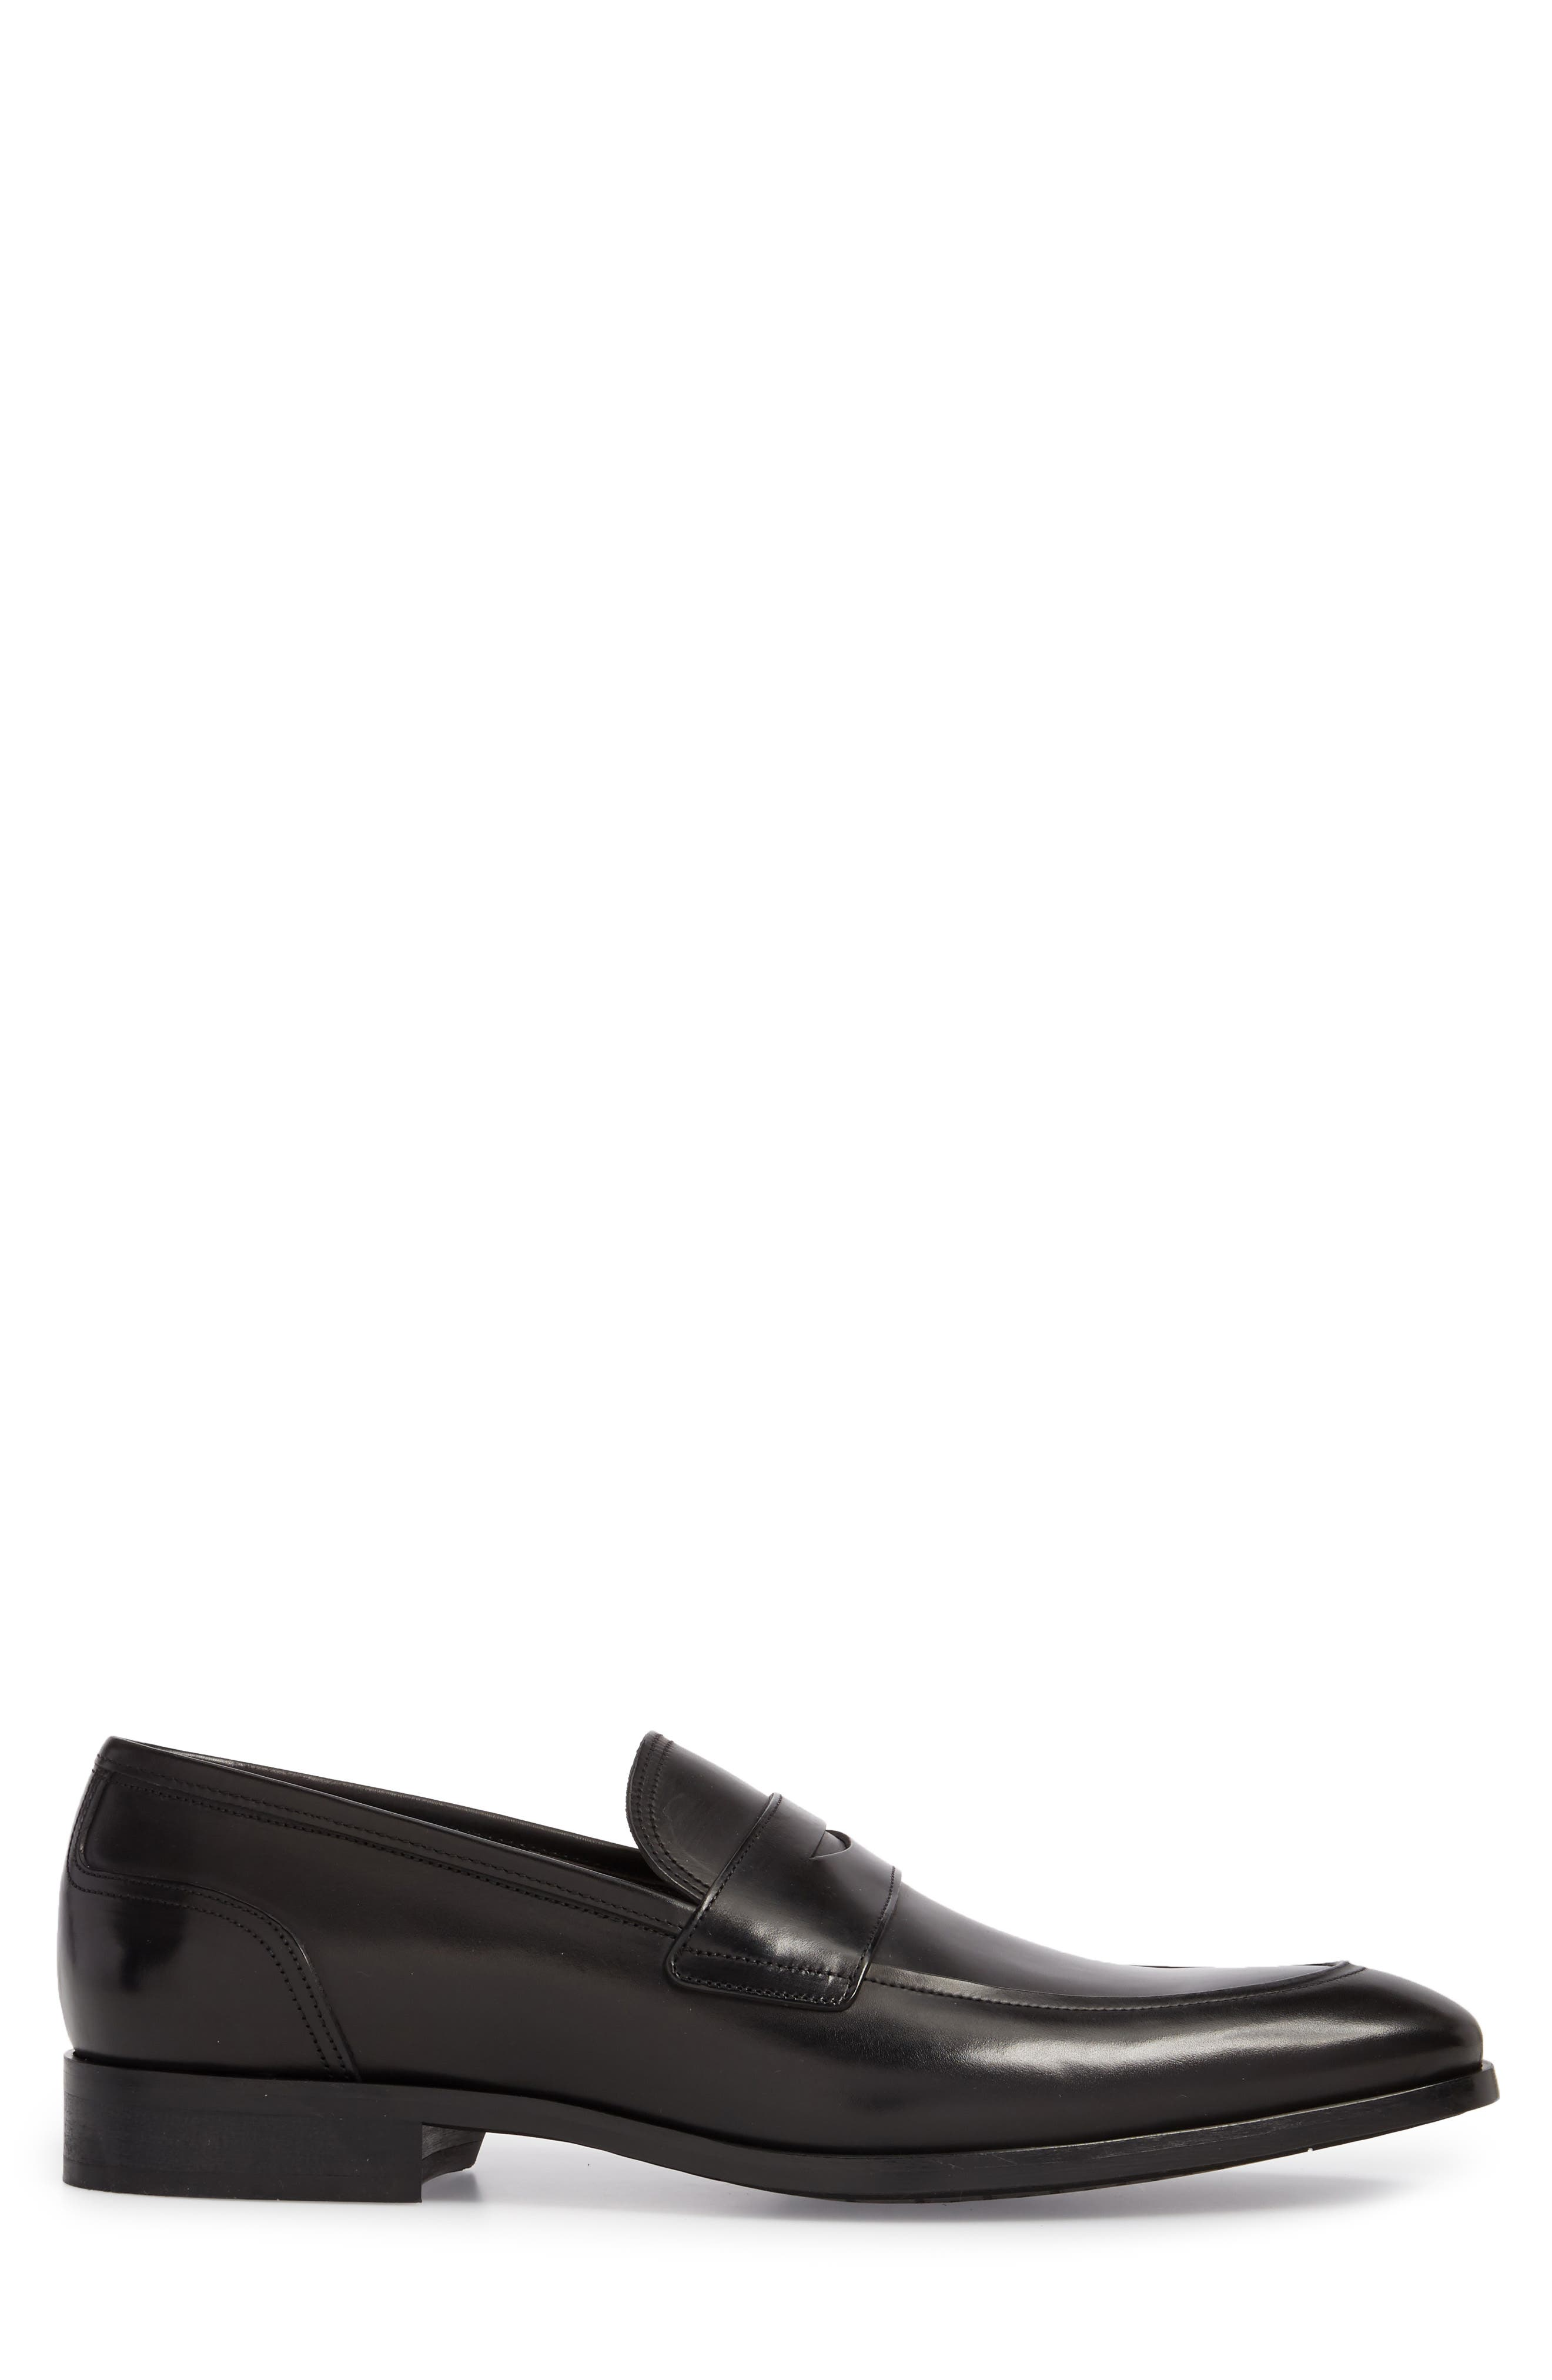 Deane Penny Loafer,                             Alternate thumbnail 3, color,                             BLACK LEATHER